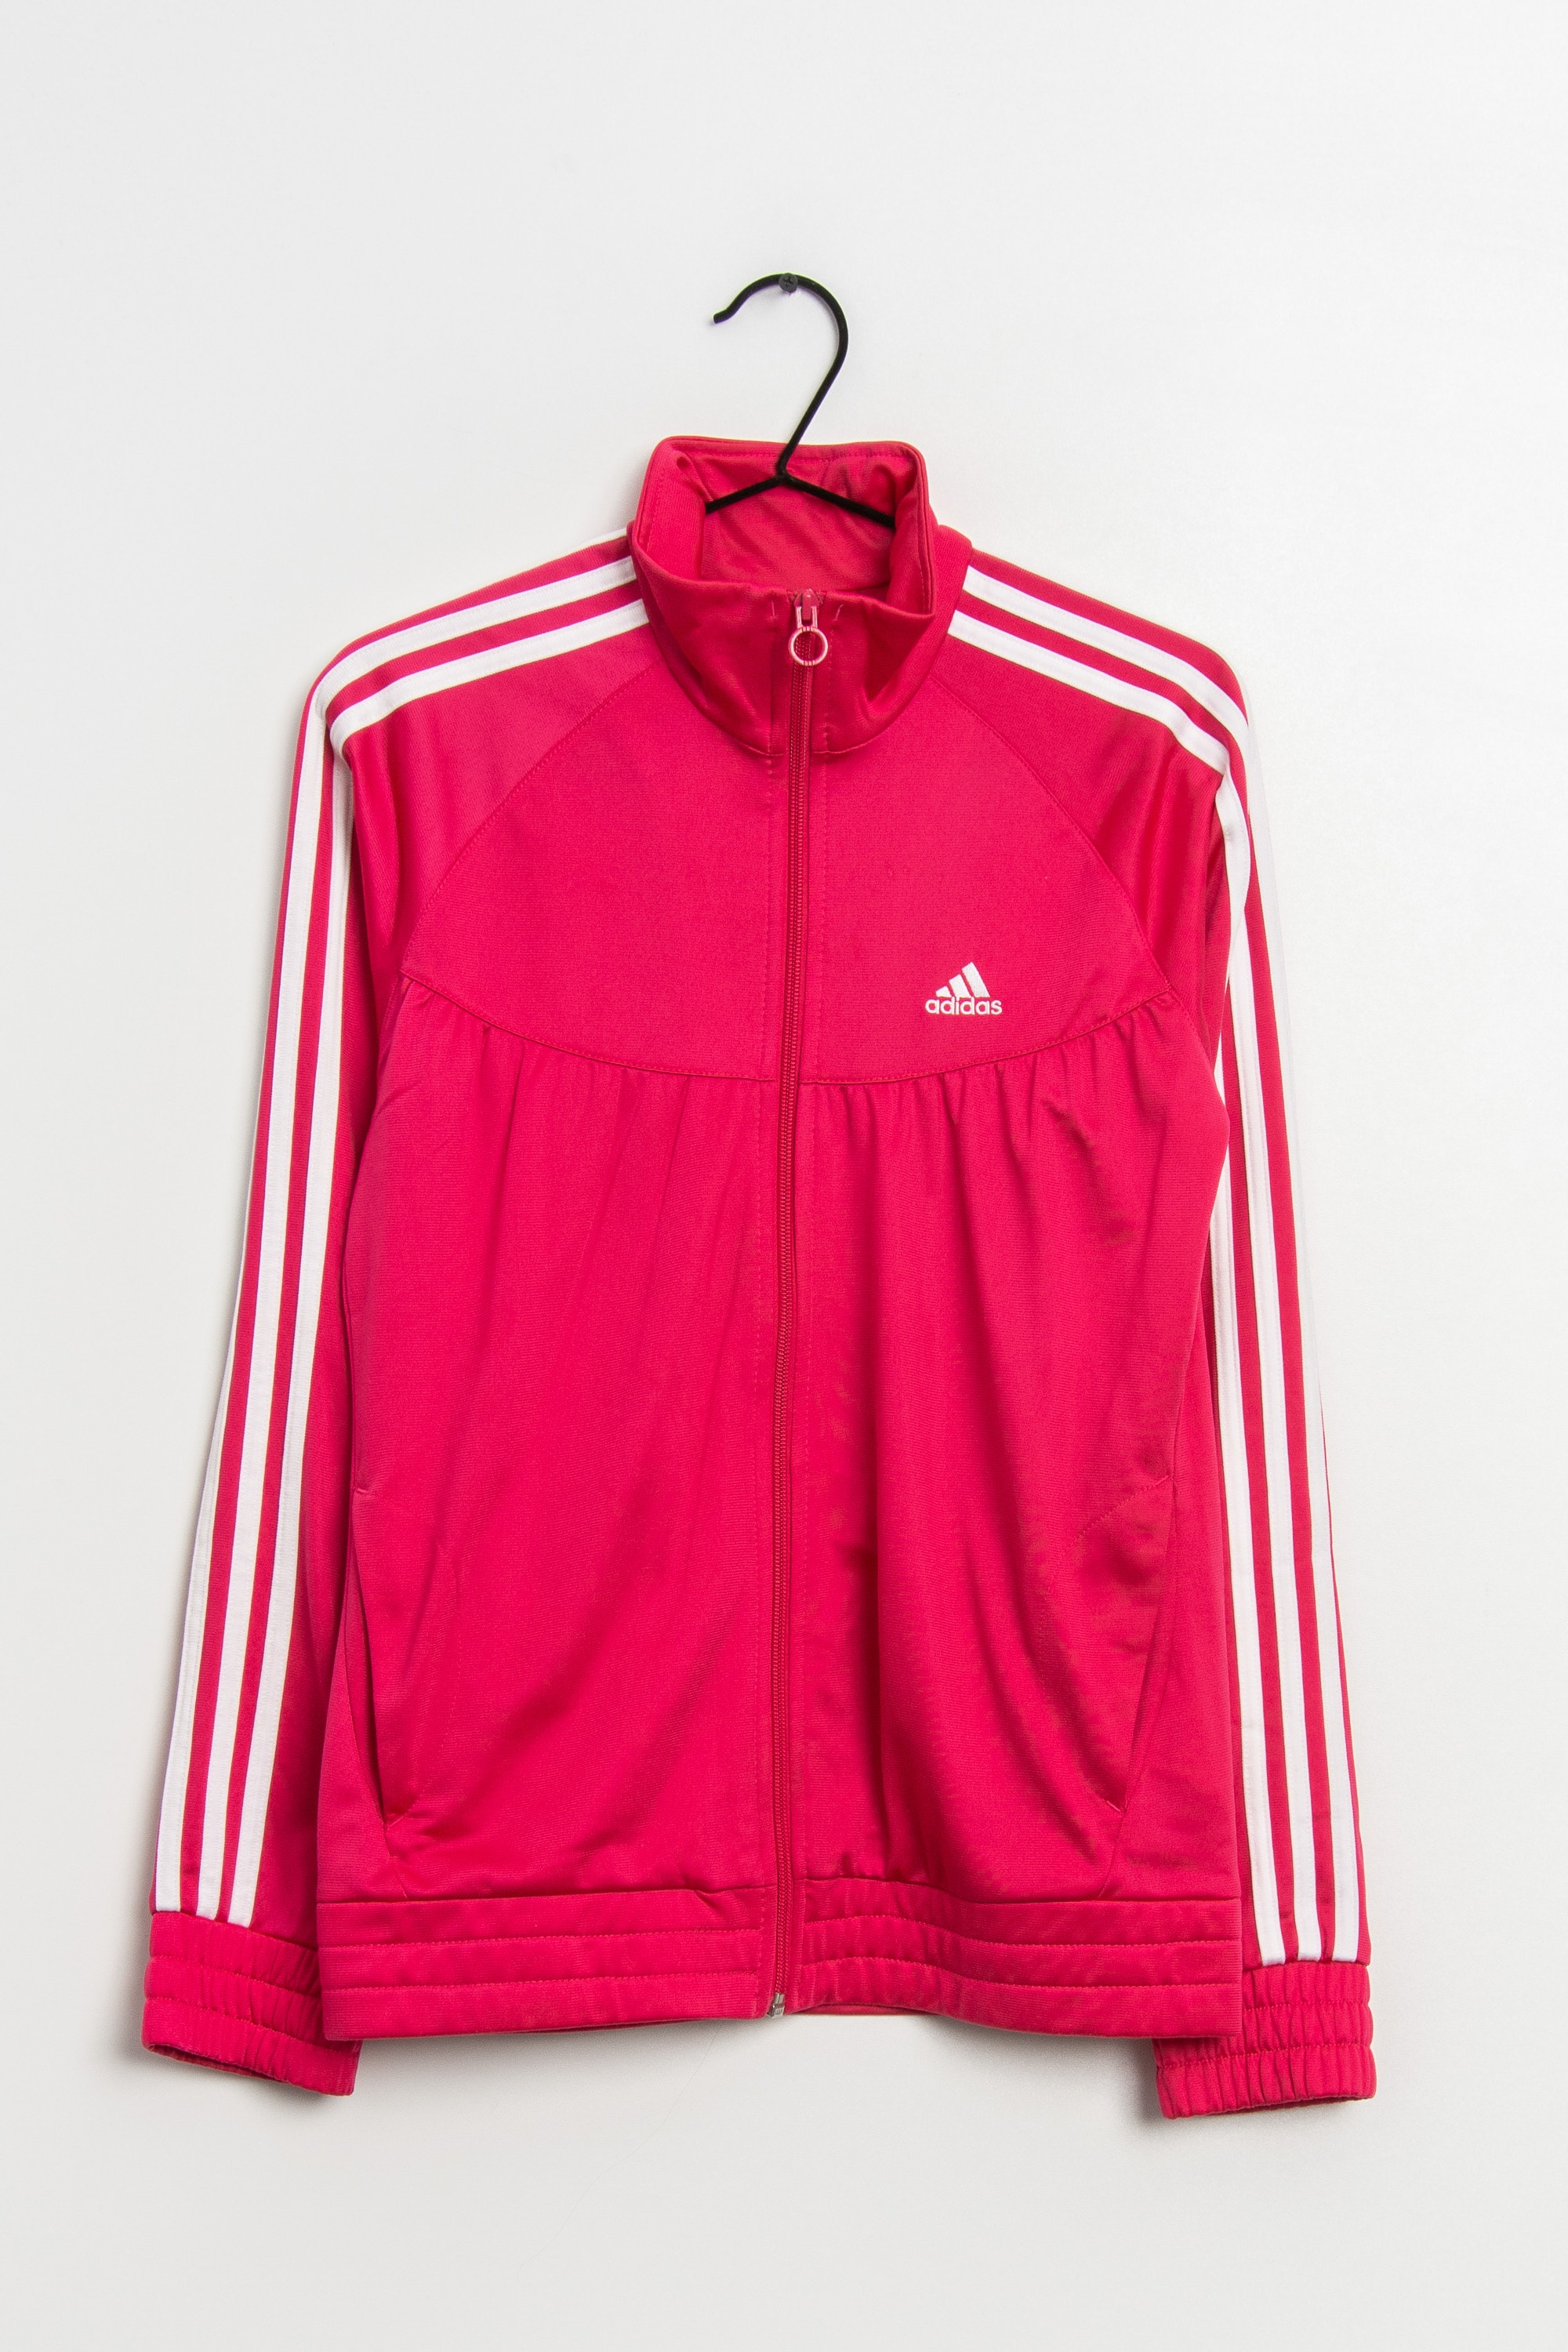 adidas Originals Sweat / Fleece Pink Gr.M